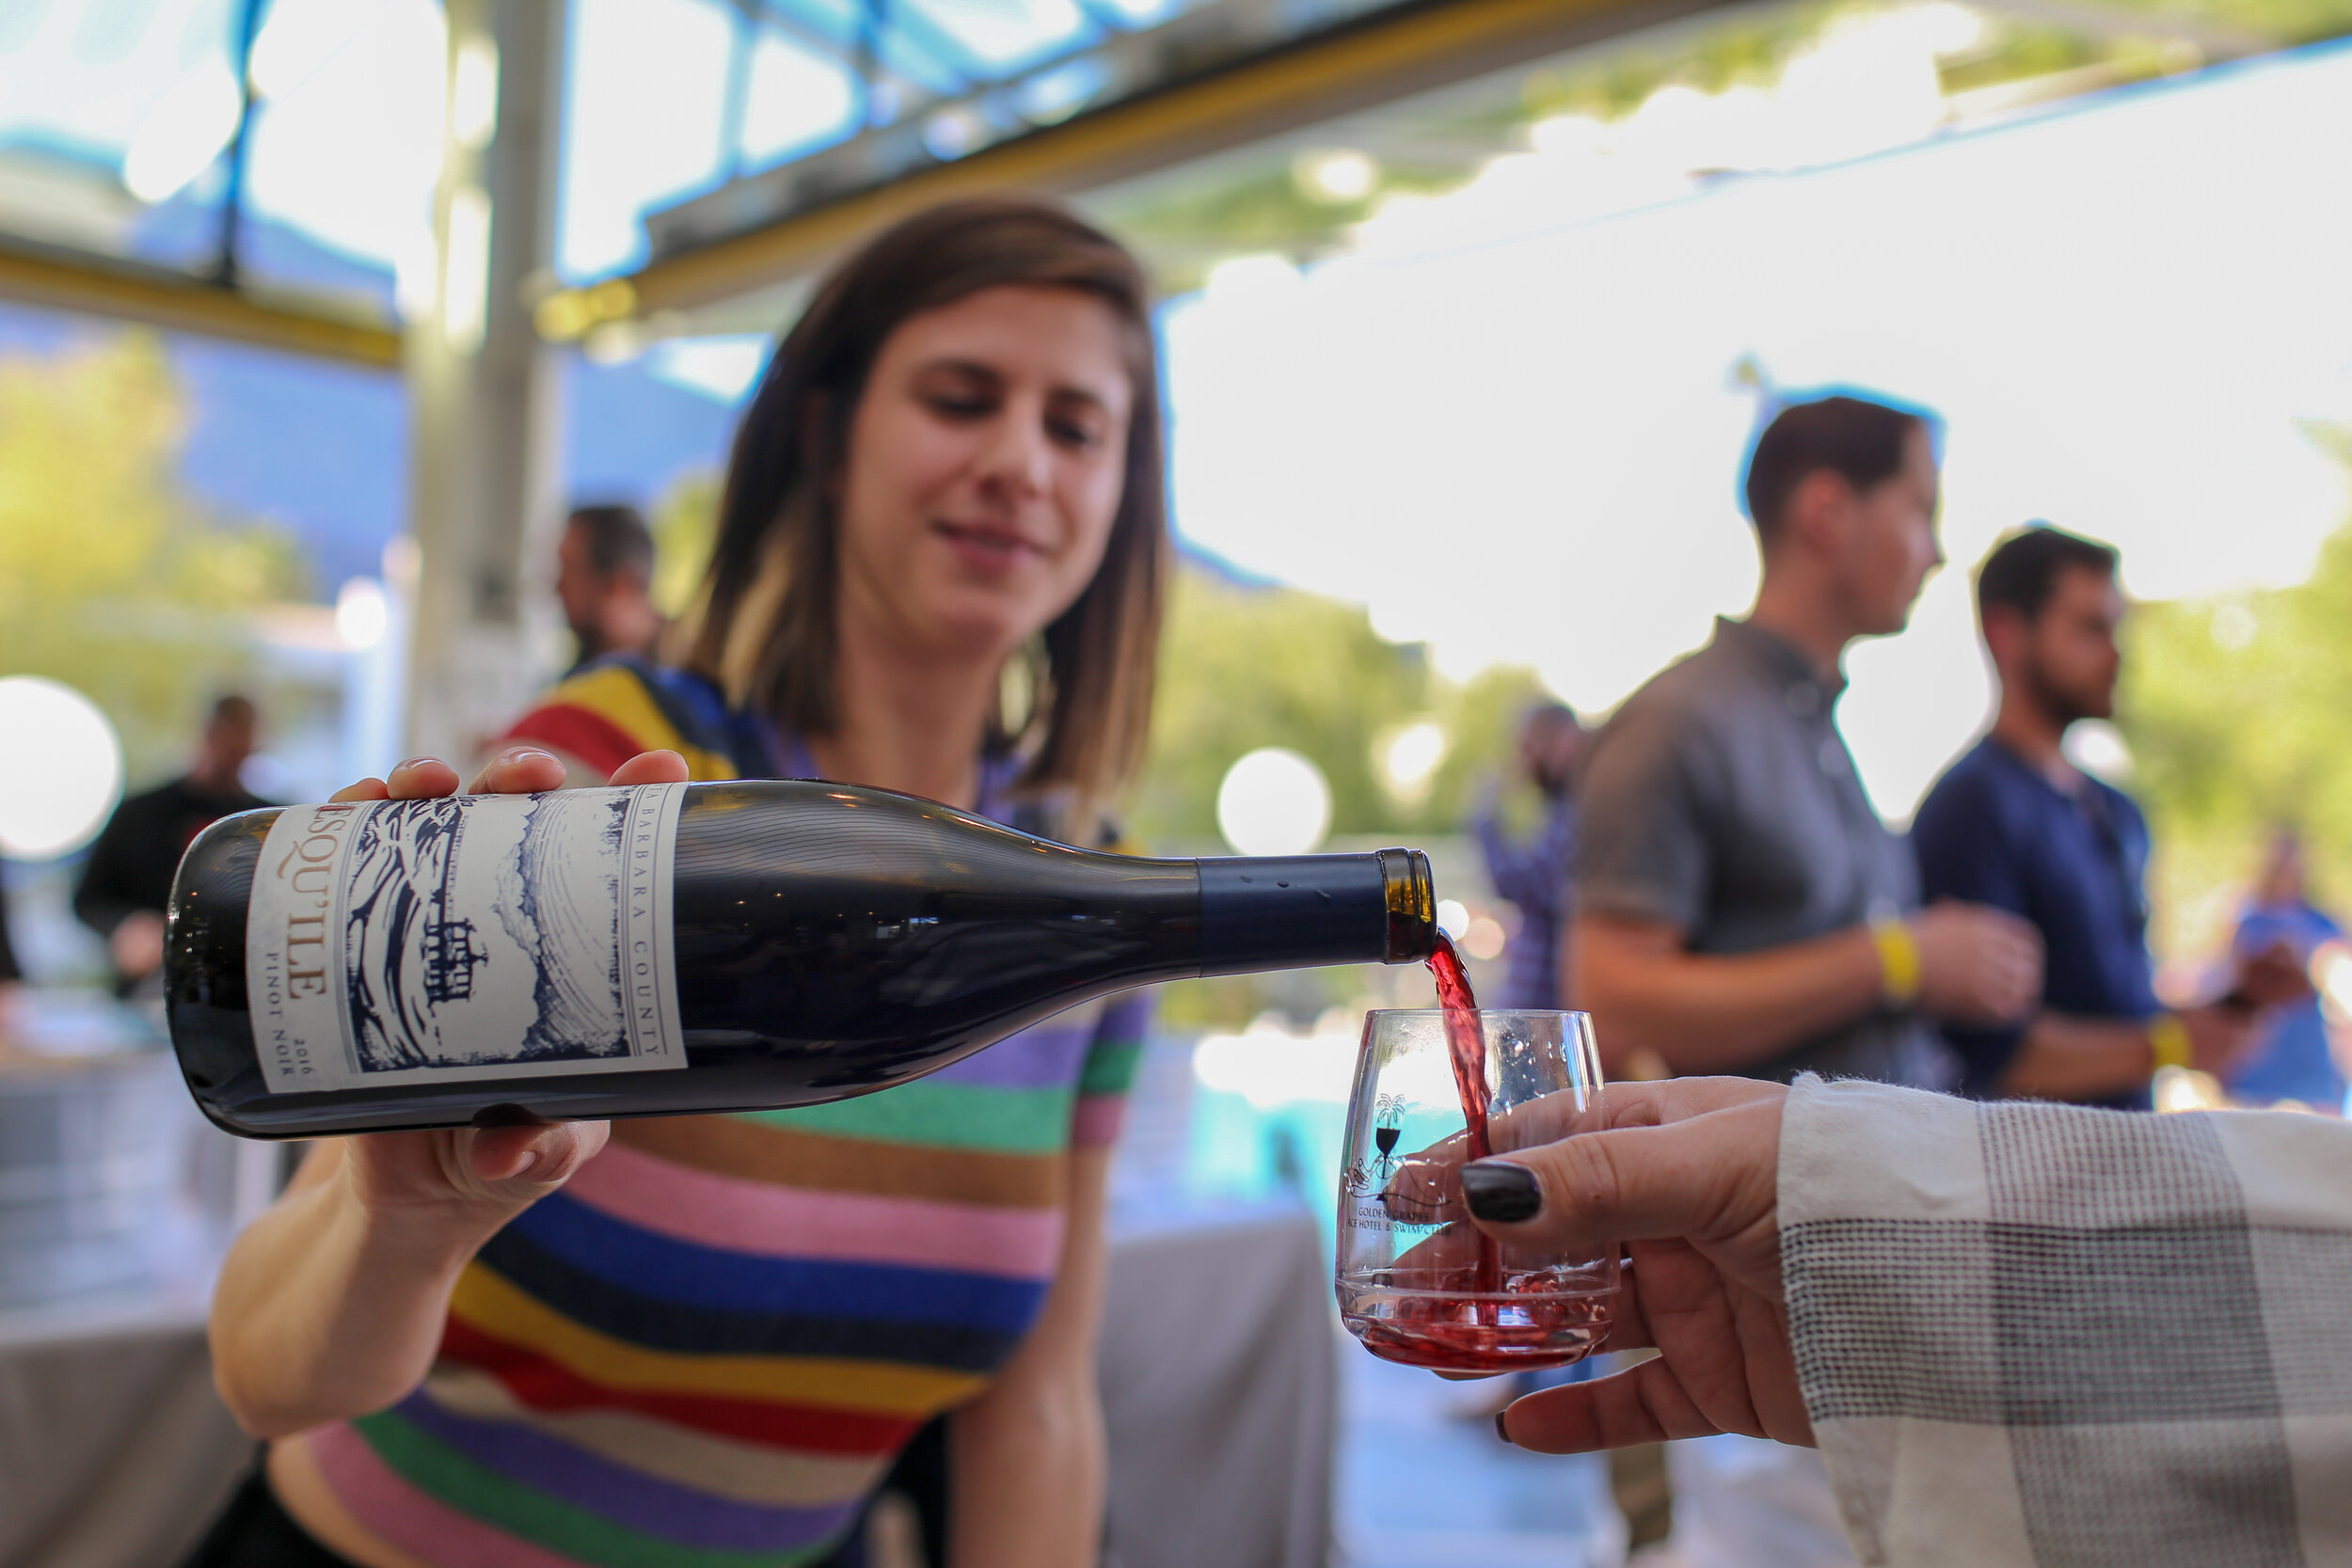 Palm SpringsWine Fest - Let's be honest. Most people have a pretty generic, polarized view of what California wine is: big, expensive Napa cabs or Two-Buck Chuck. But in recent years, a new guard of winemakers has been shaking up the style. Palm Springs Wine Fest is dedicated to these creators. Founded by Dead or Alive owner Christine Soto, the nonprofit brings educational wine events to the Coachella Valley, from seminars and trips to wine dinners and trainings.LEARN MORE.